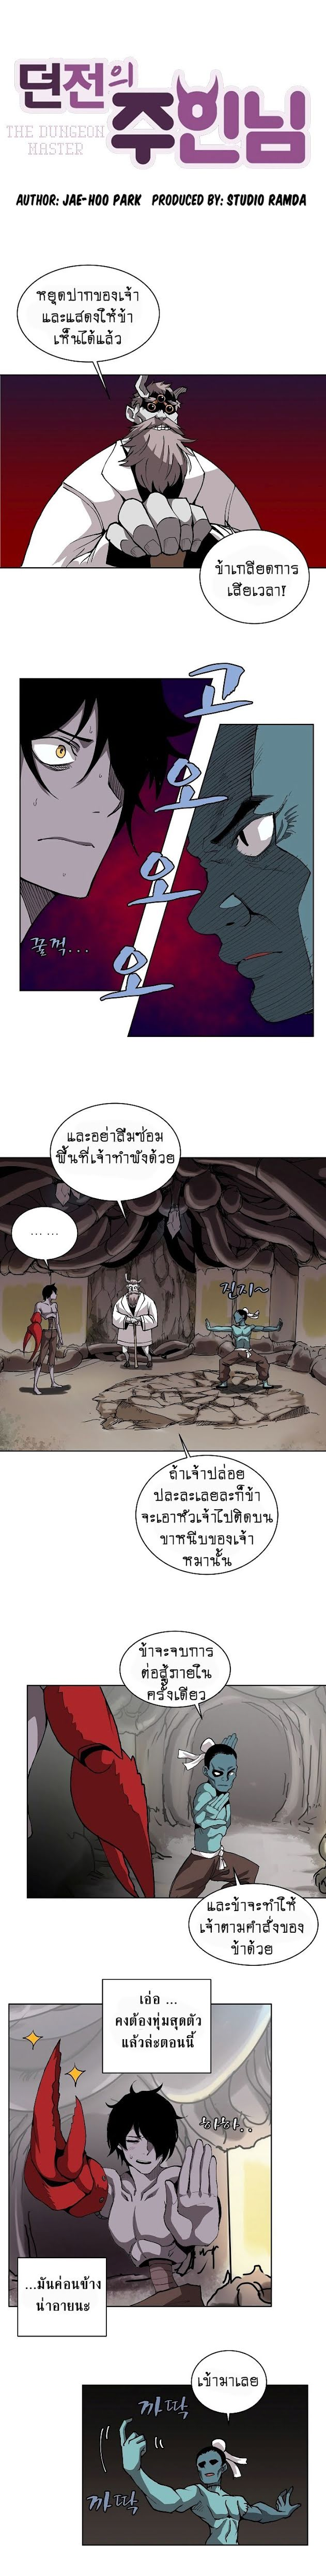 The dungeon master-ตอนที่ 5